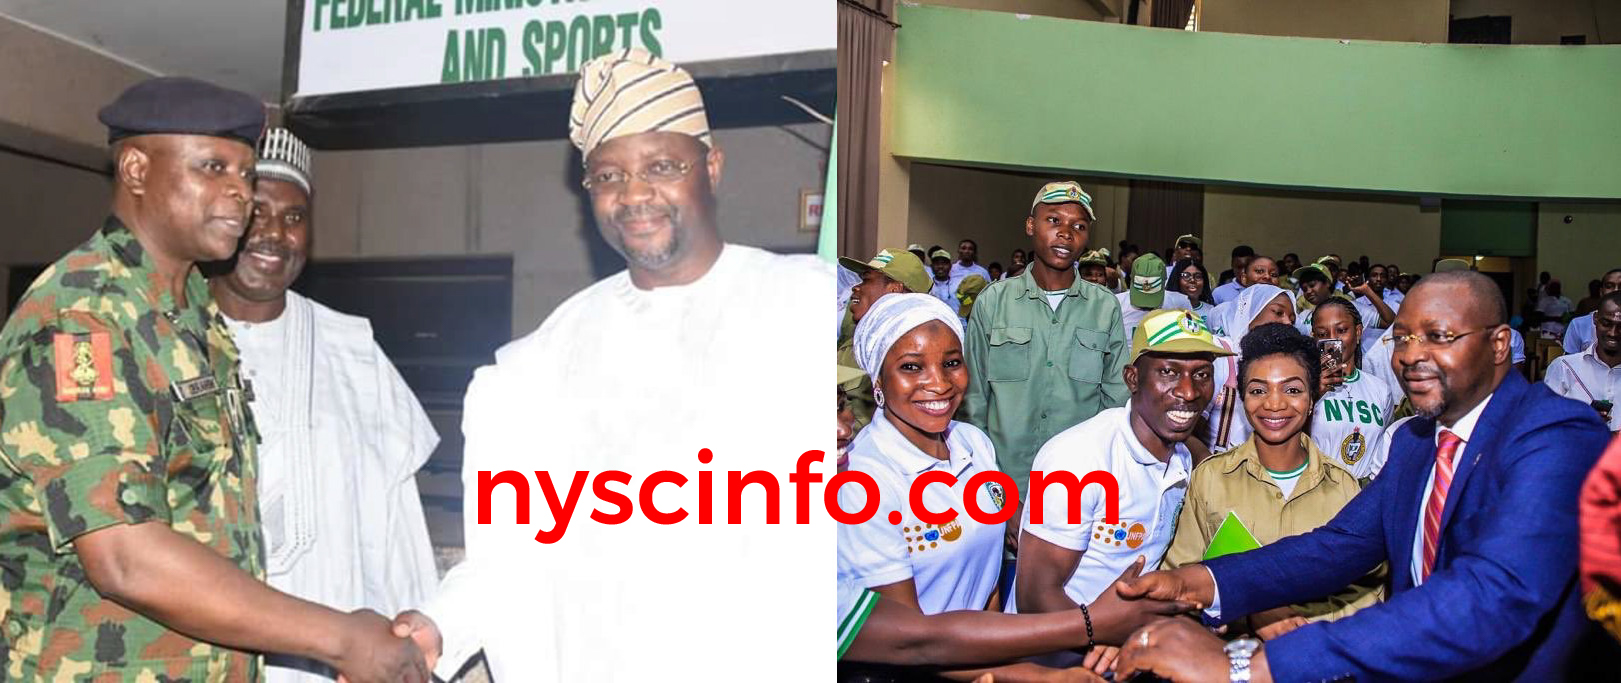 NYSC DG, Corpers welcome new Minister of Youth and Sports